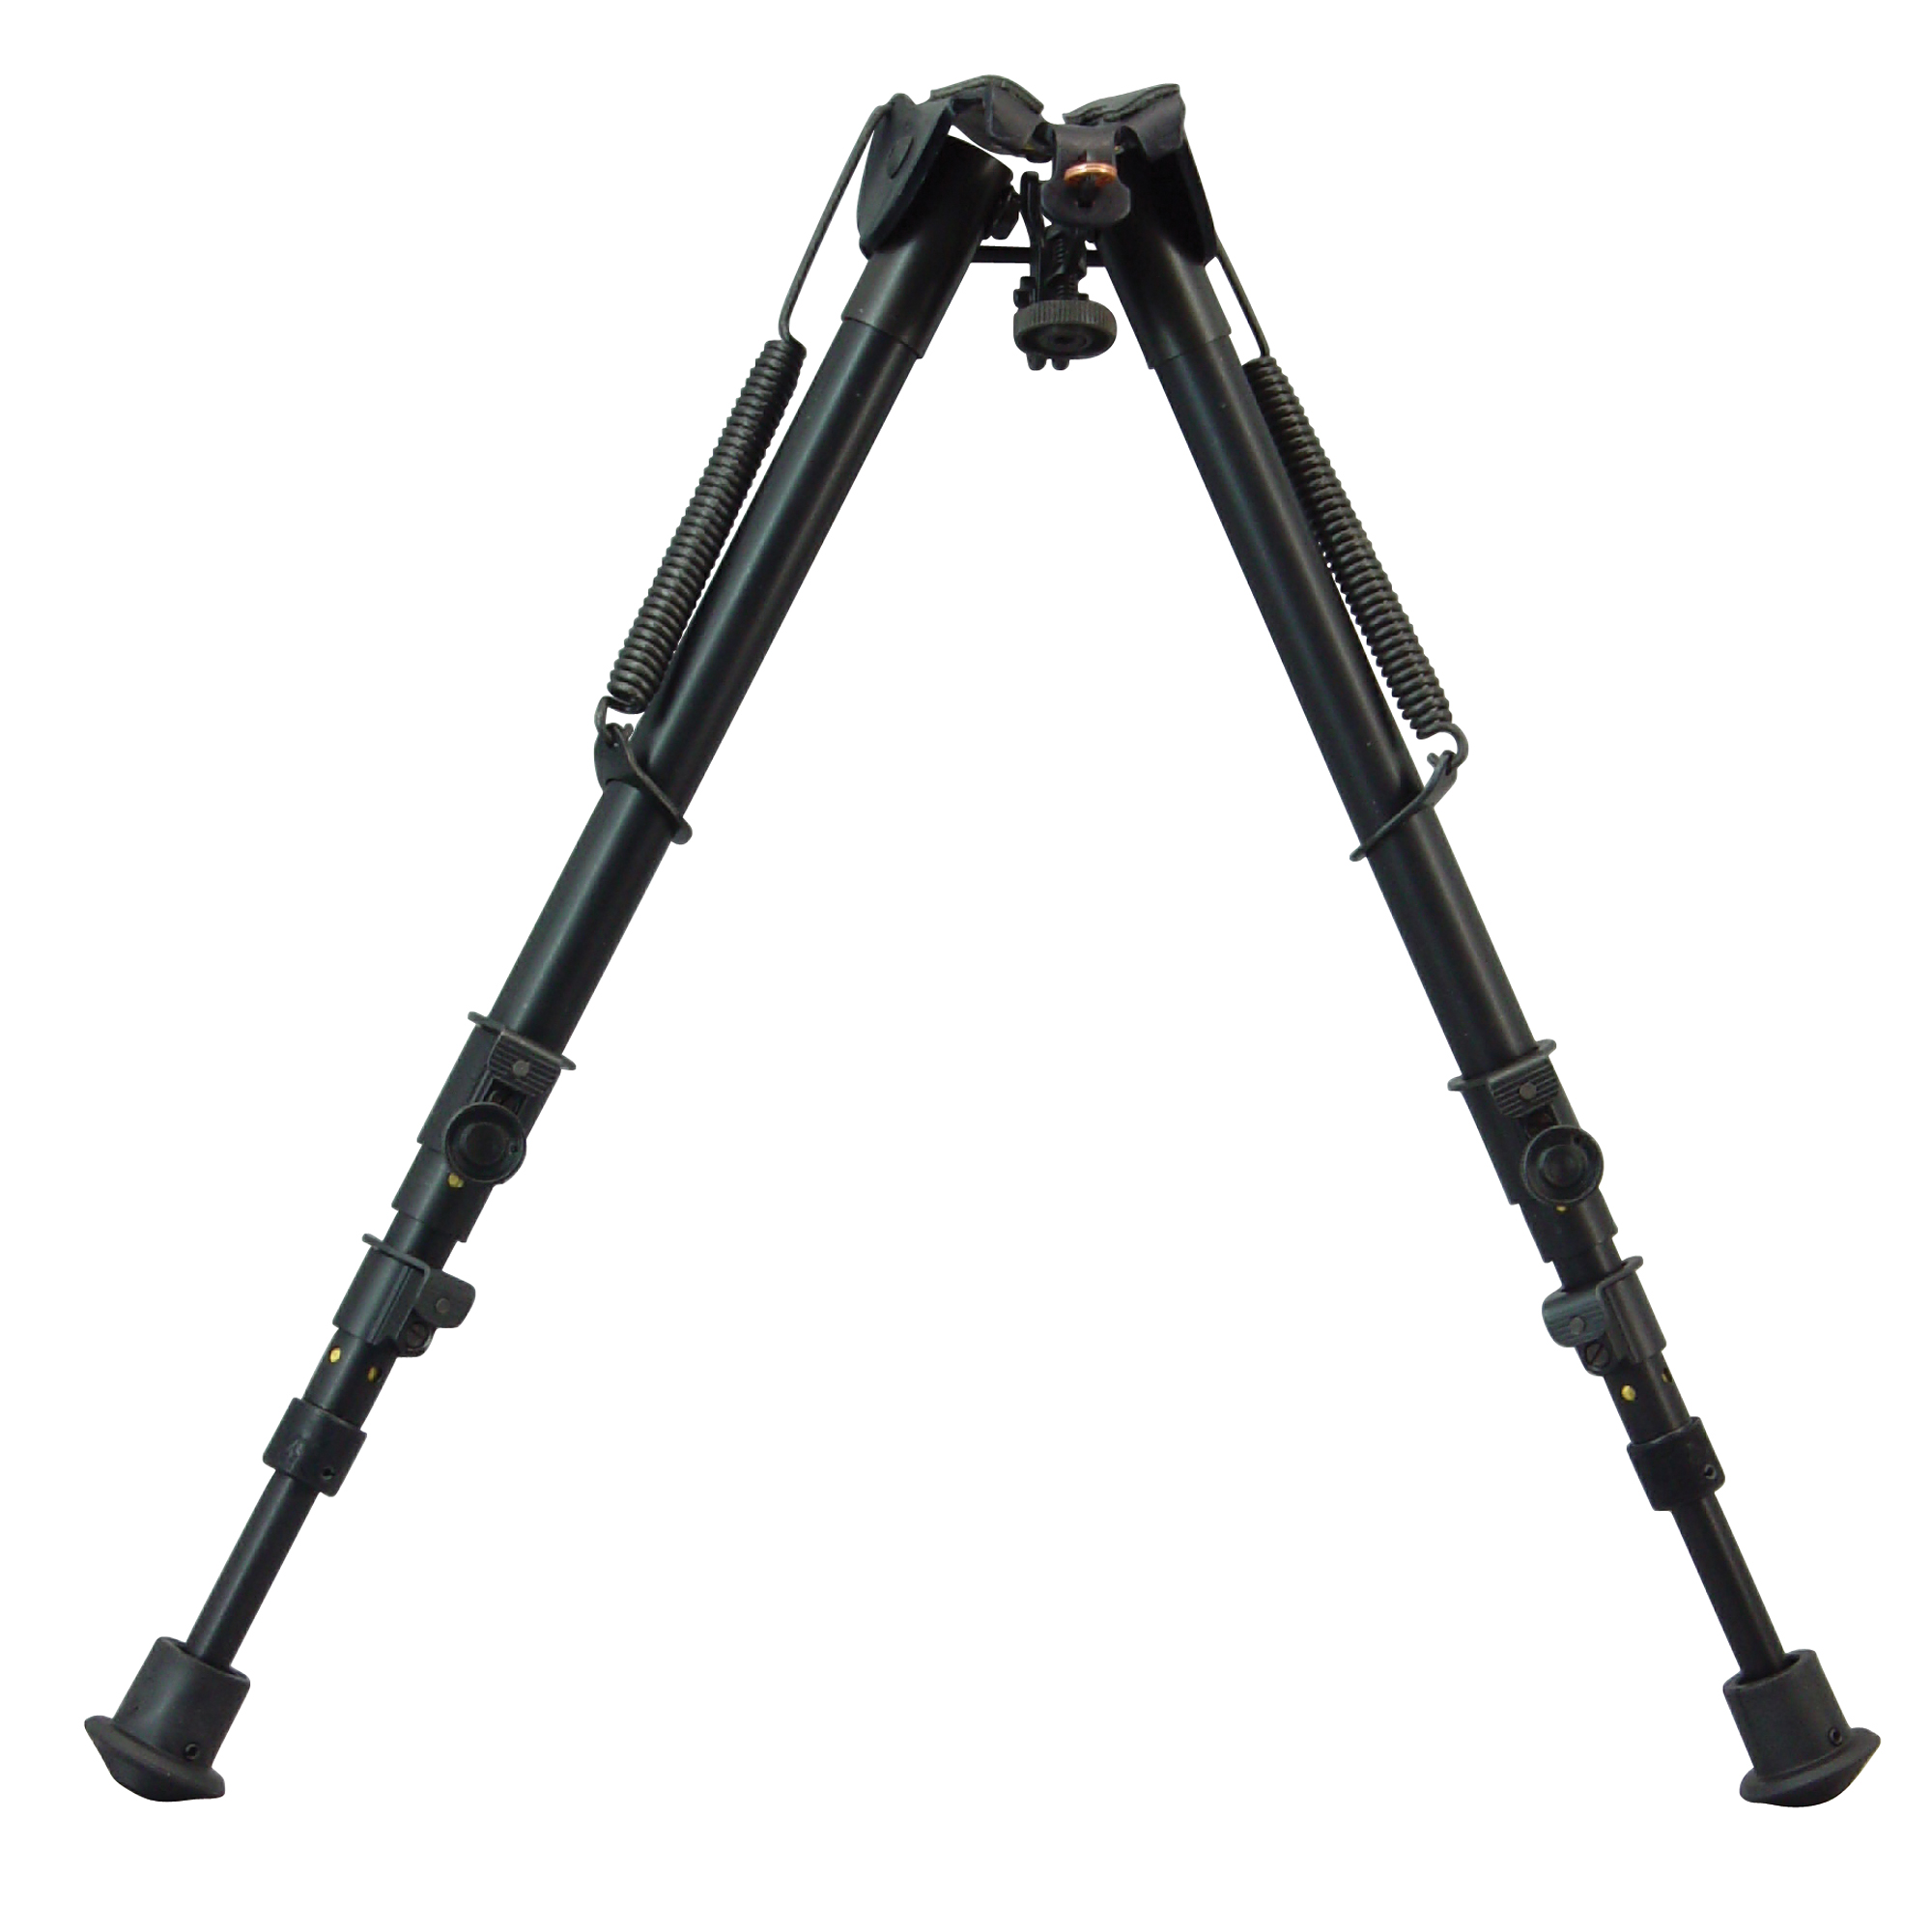 """Harris Engineering's Ultra-Light 13""""-27"""" Rotating Bipod is manufactured with heat treated steel and hard alloys. It clamps to the Q.D. stud of most bolt action rifles that have a conventional stock design. Carrying your rifle with a sling or shooting off-hand is not impeded by the use of a Harris Bipod. Folding legs have completely adjustable spring-return extensions (Except for Model BRM and LM)."""